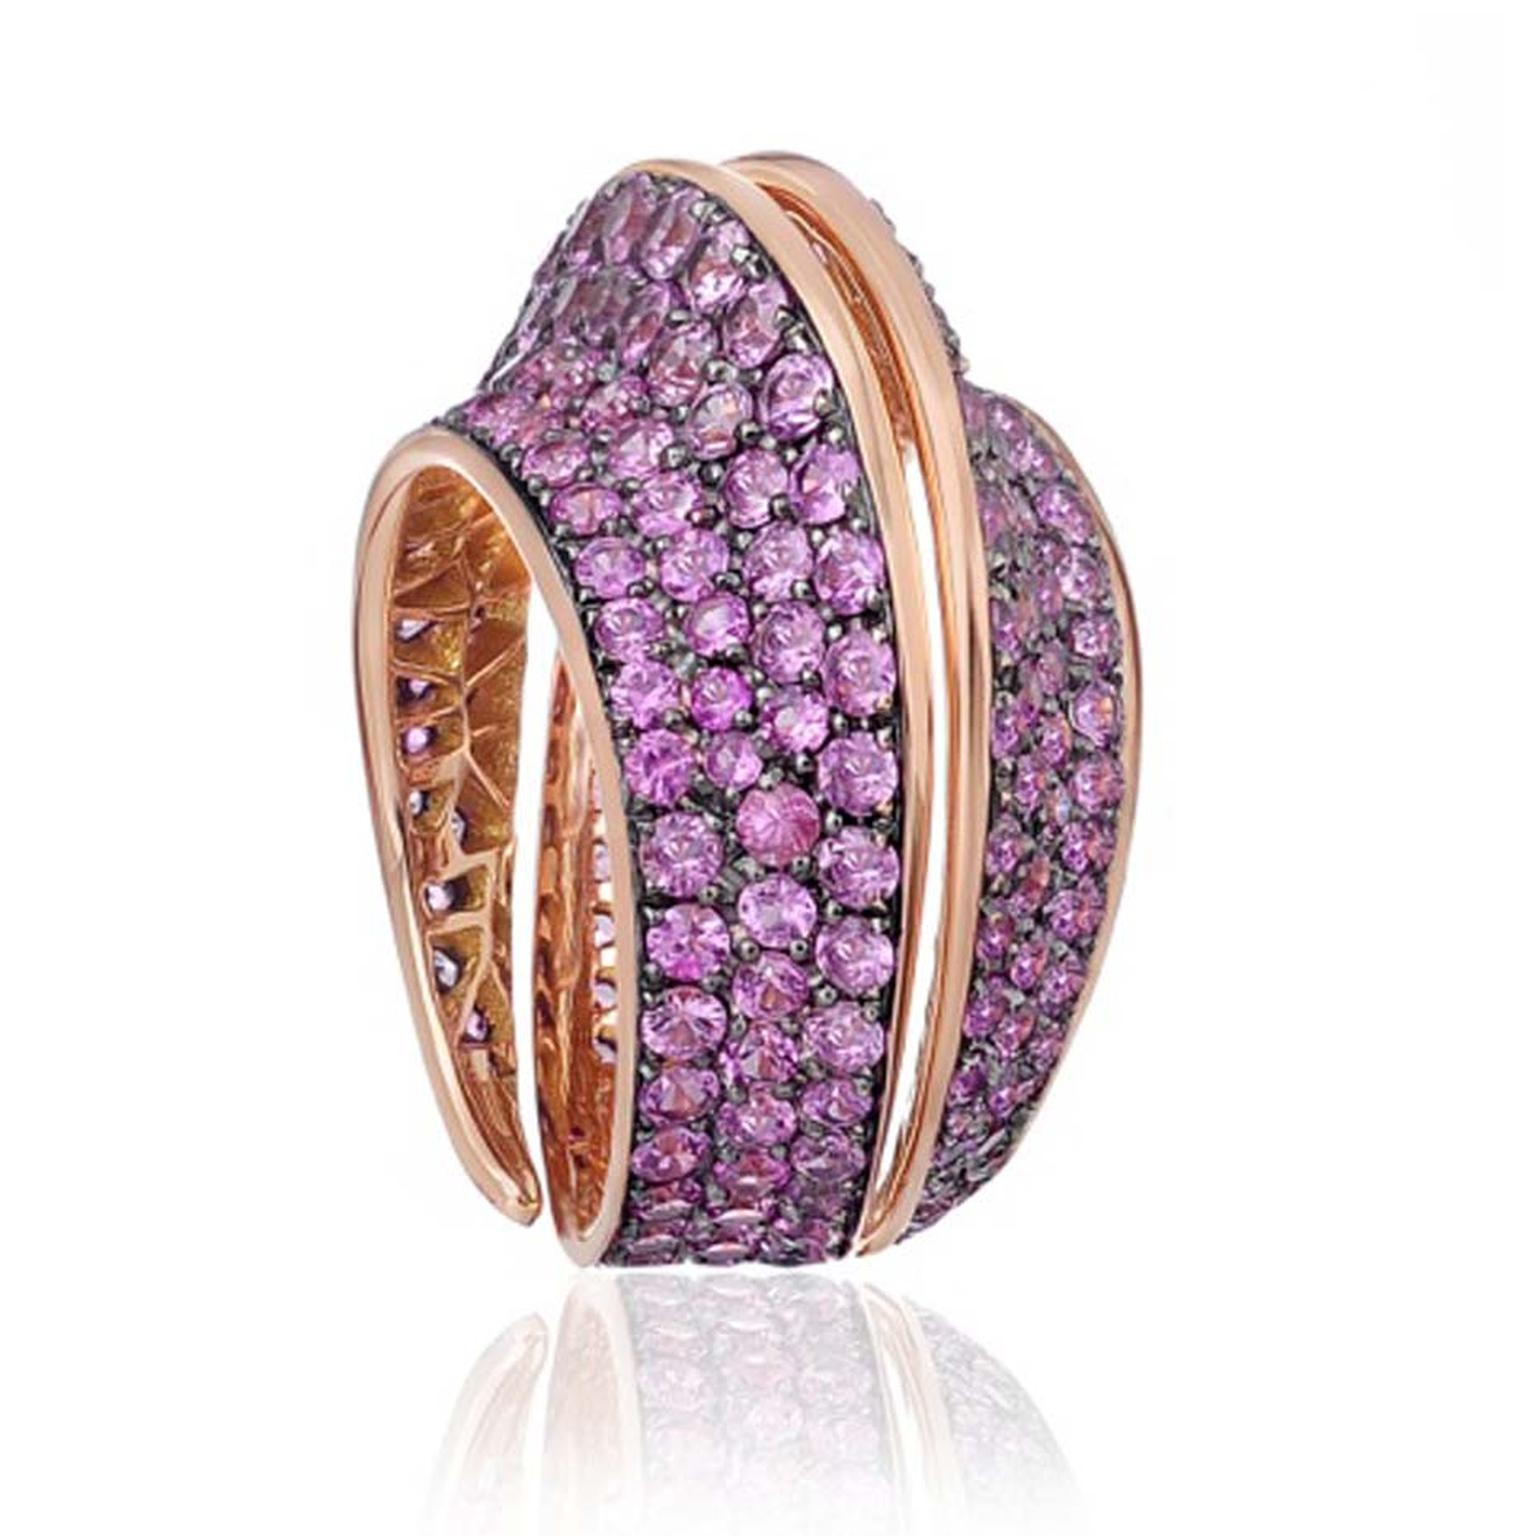 Lily Gabriella ring in rose gold, pavé set with pink sapphires.